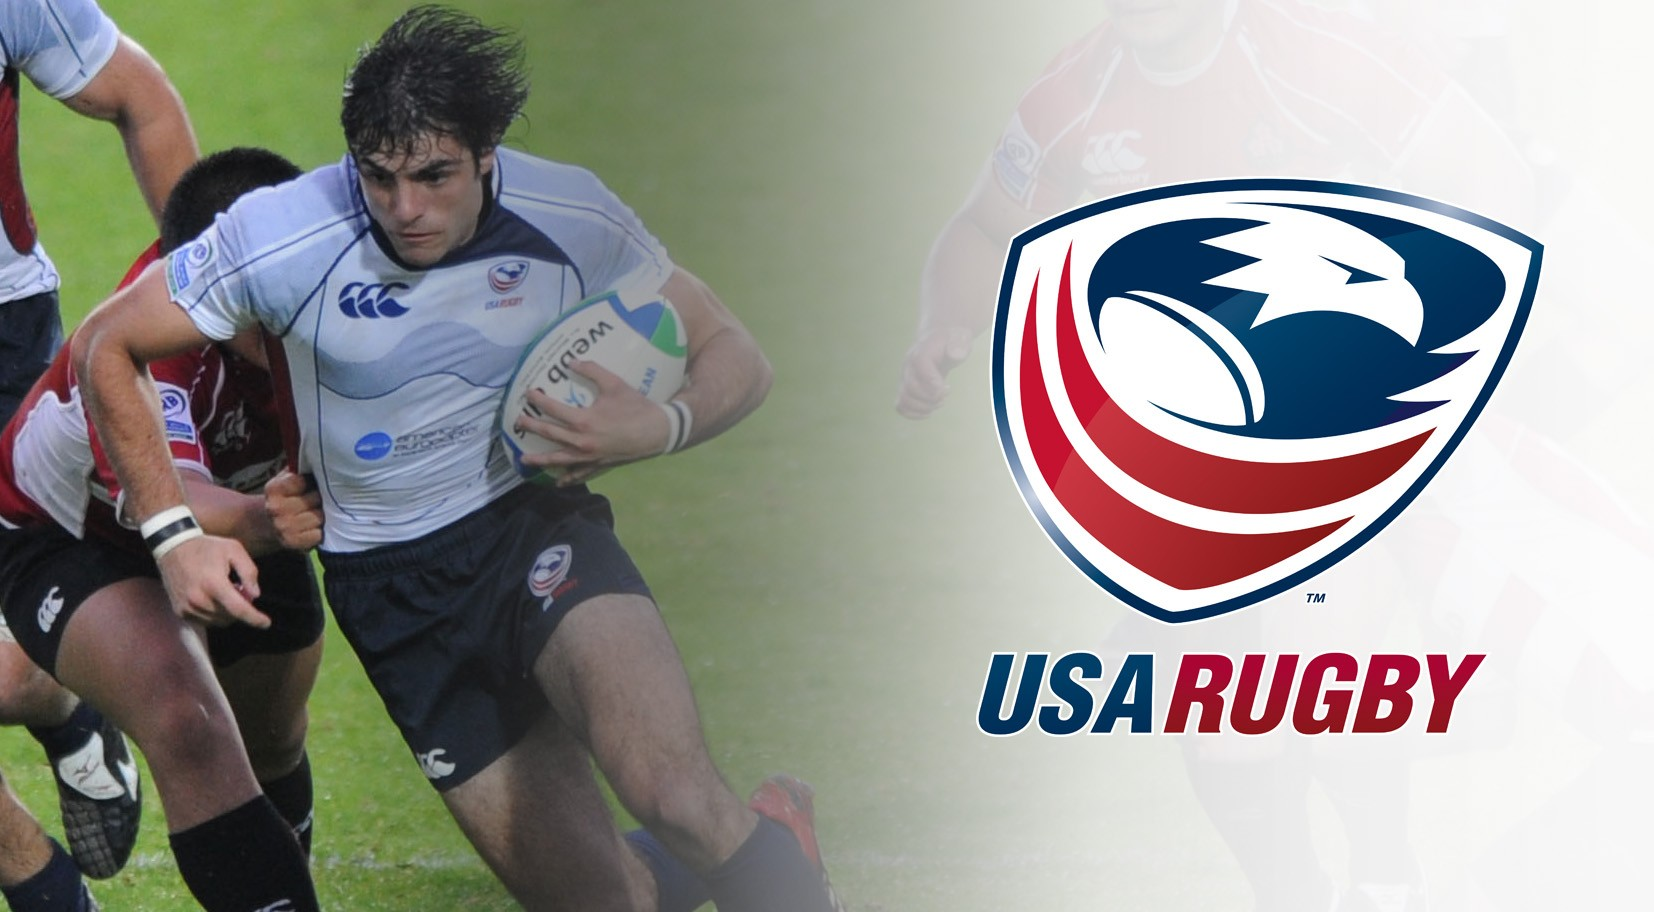 New England Patriot Nate Ebner to attempt Olympic run with USA Rugby